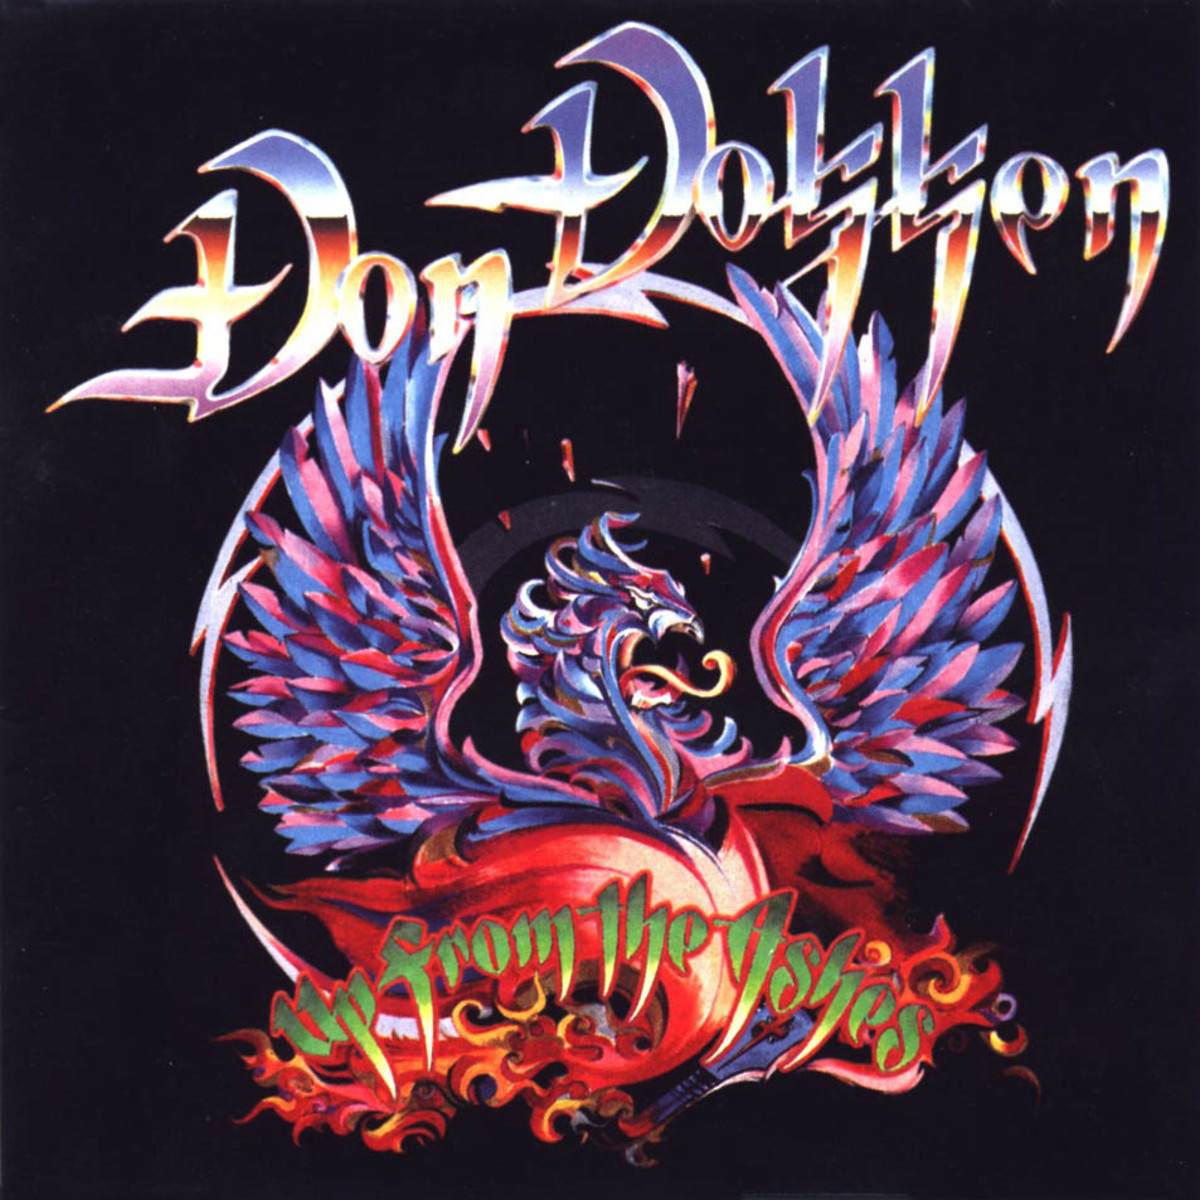 Review: Up From the Ashes Hard Rock featuring the vocals of Don Dokken